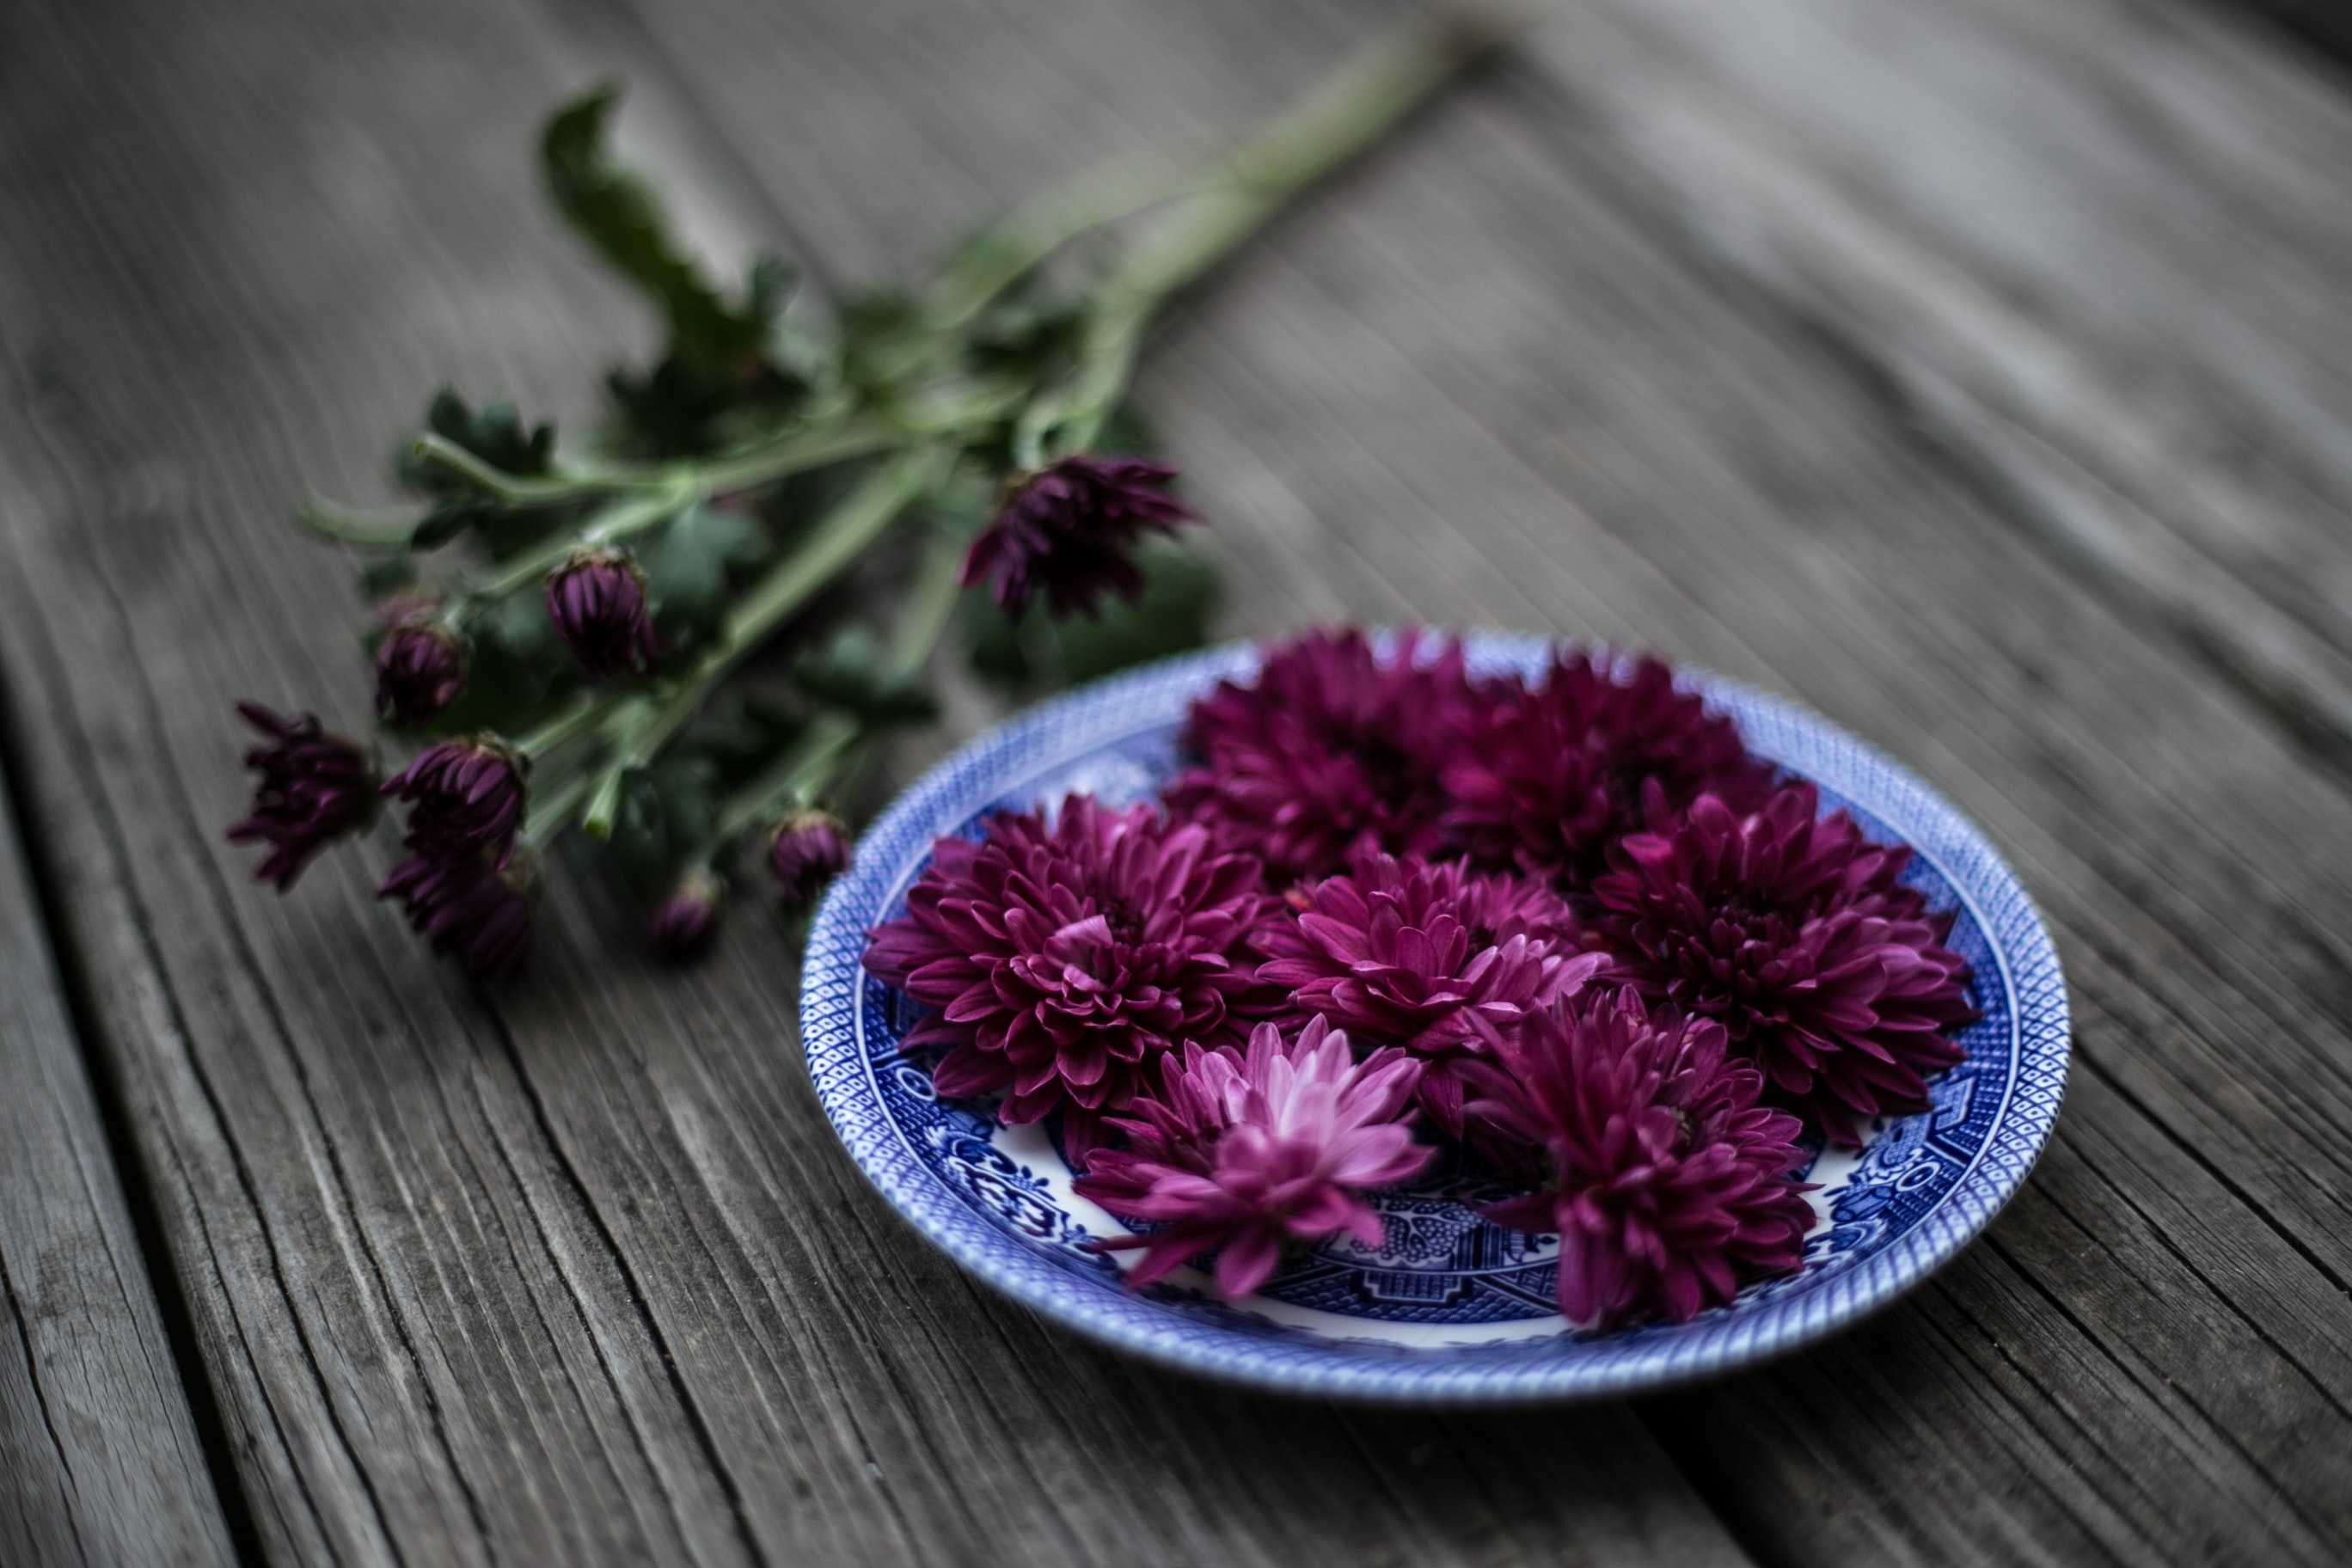 purple flowers on blue plate